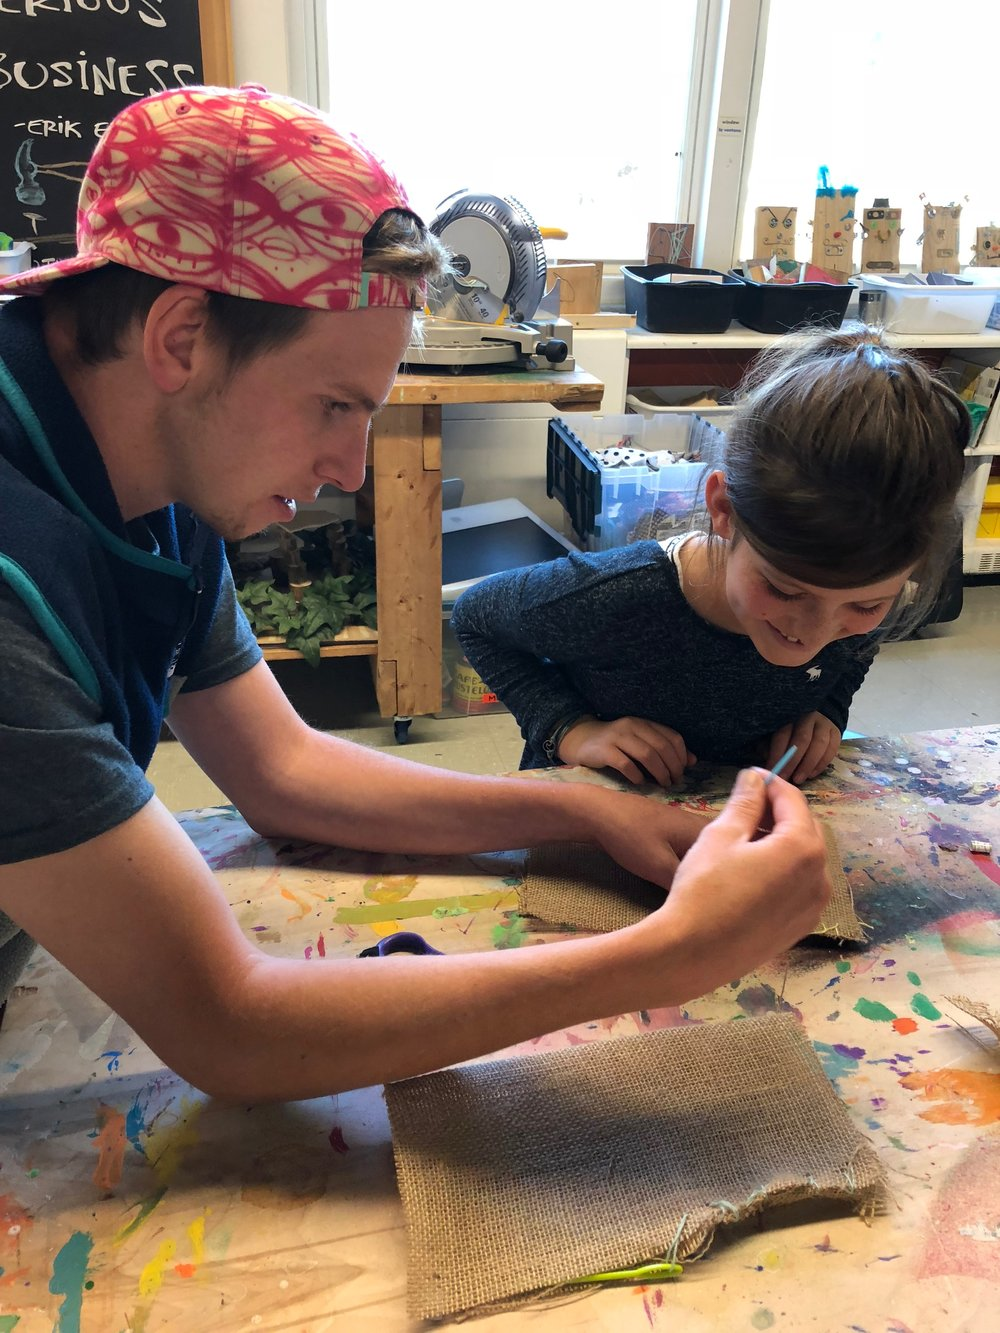 Zach - Zach works with our afterschool classes. He brings a fun playful energy matched only by his awesome experience in screen printing, painting, and other forms of graphic art.